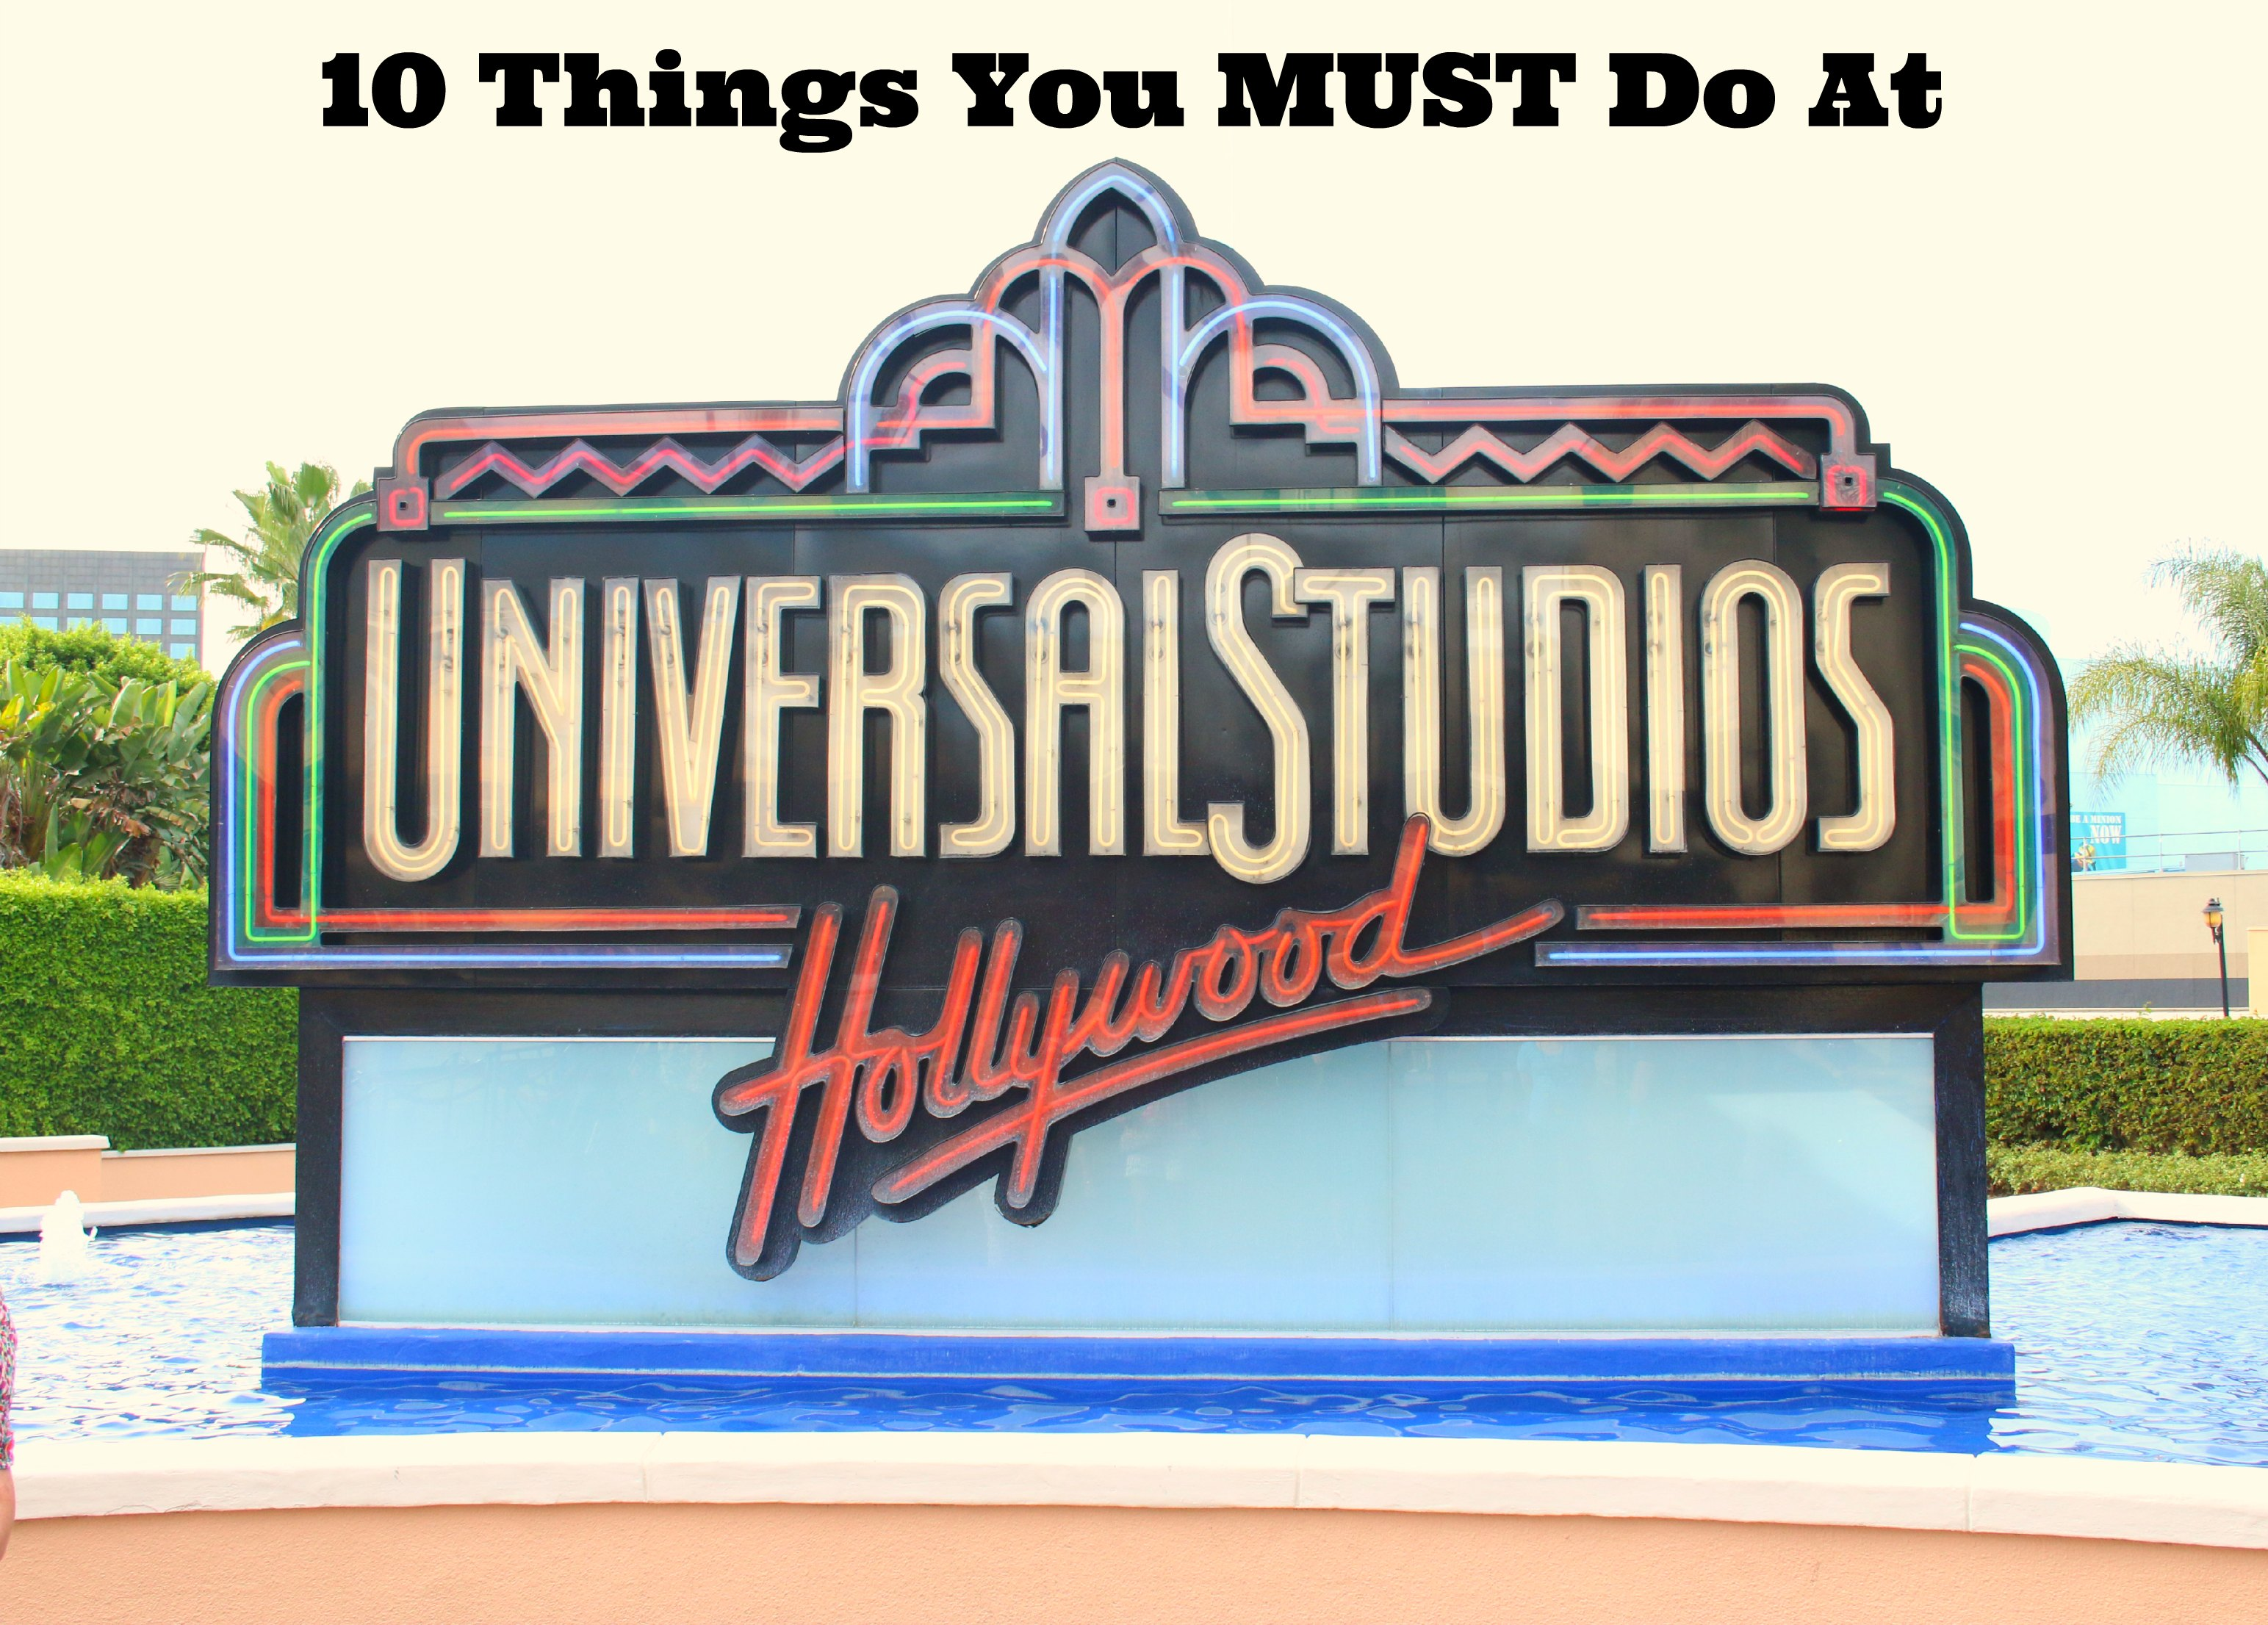 10 things you must do at Universal Studios Hollywood